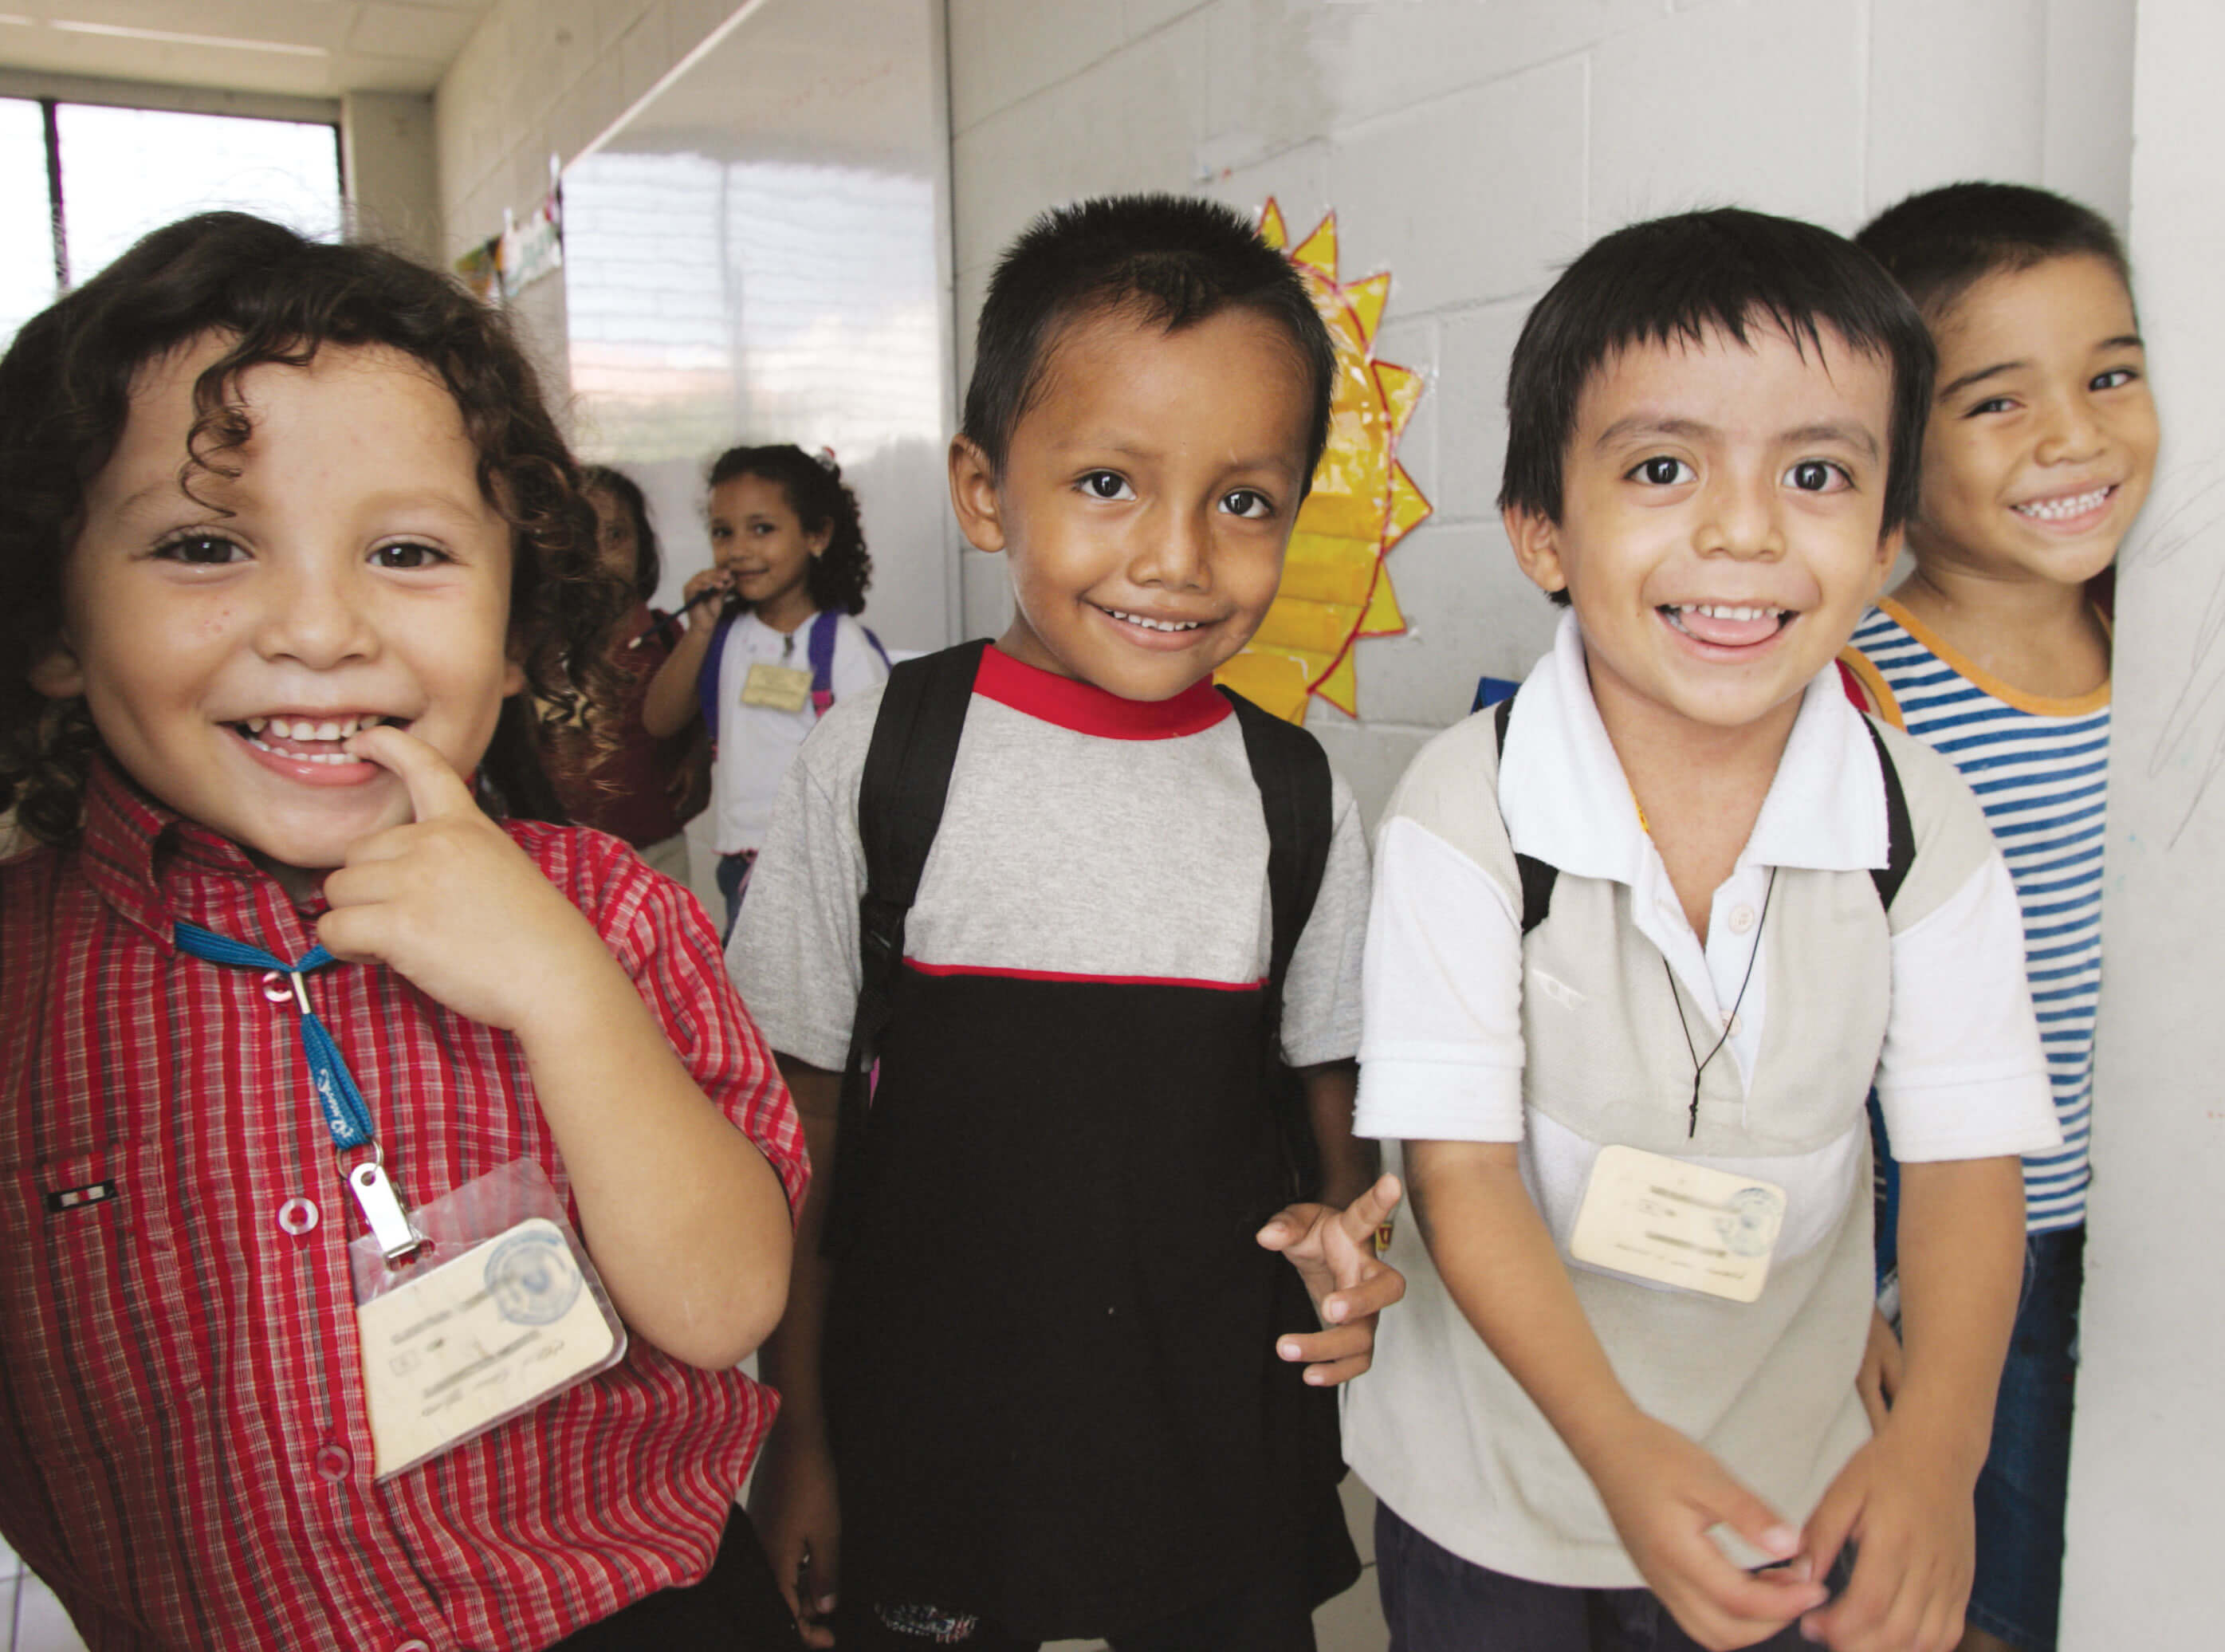 help students at mano amiga schools in Latin America